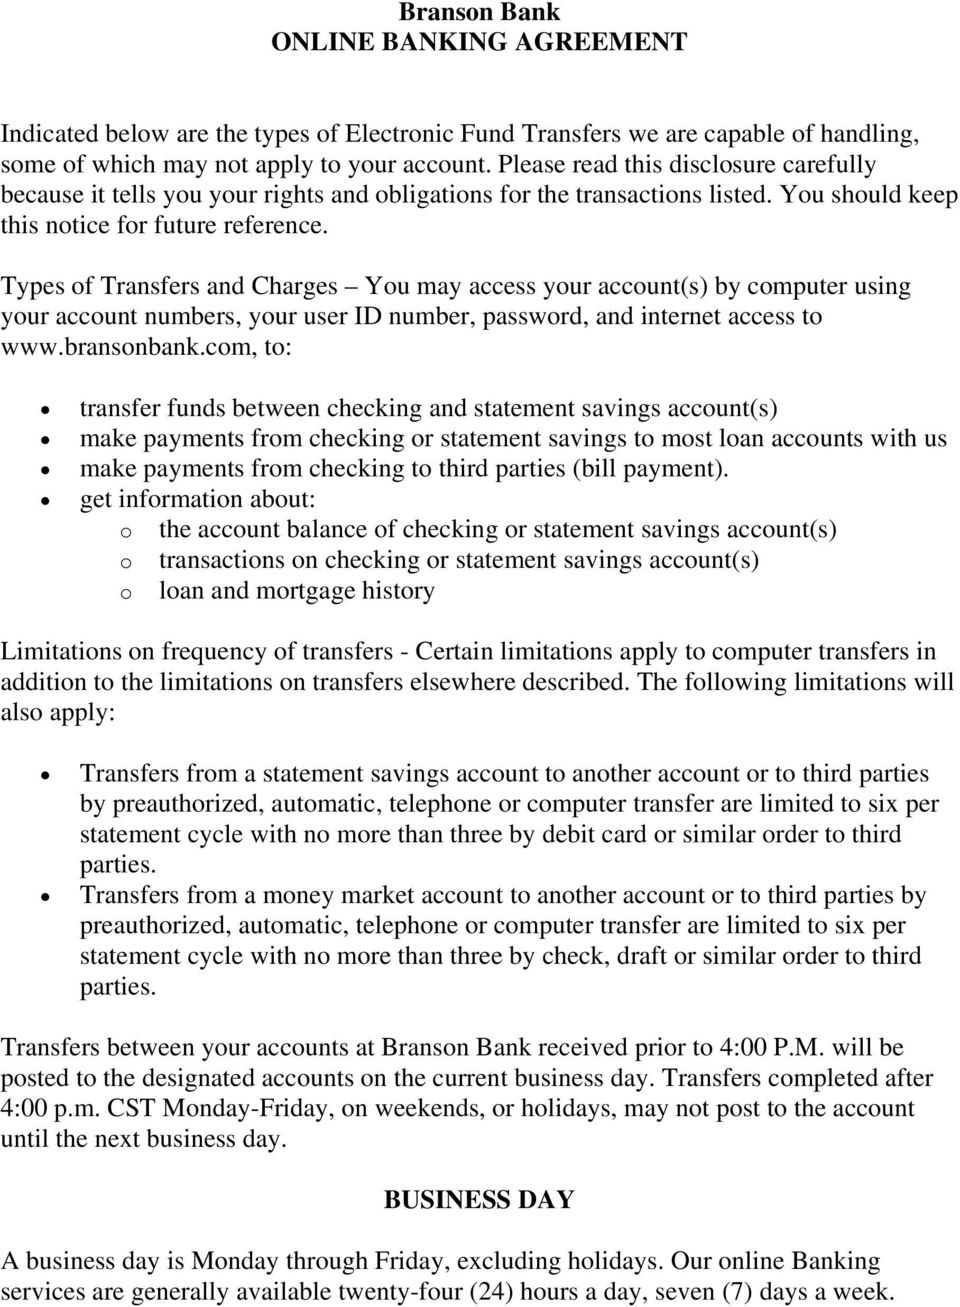 Types of Transfers and Charges You may access your account(s) by computer using your account numbers, your user ID number, password, and internet access to www.bransonbank.